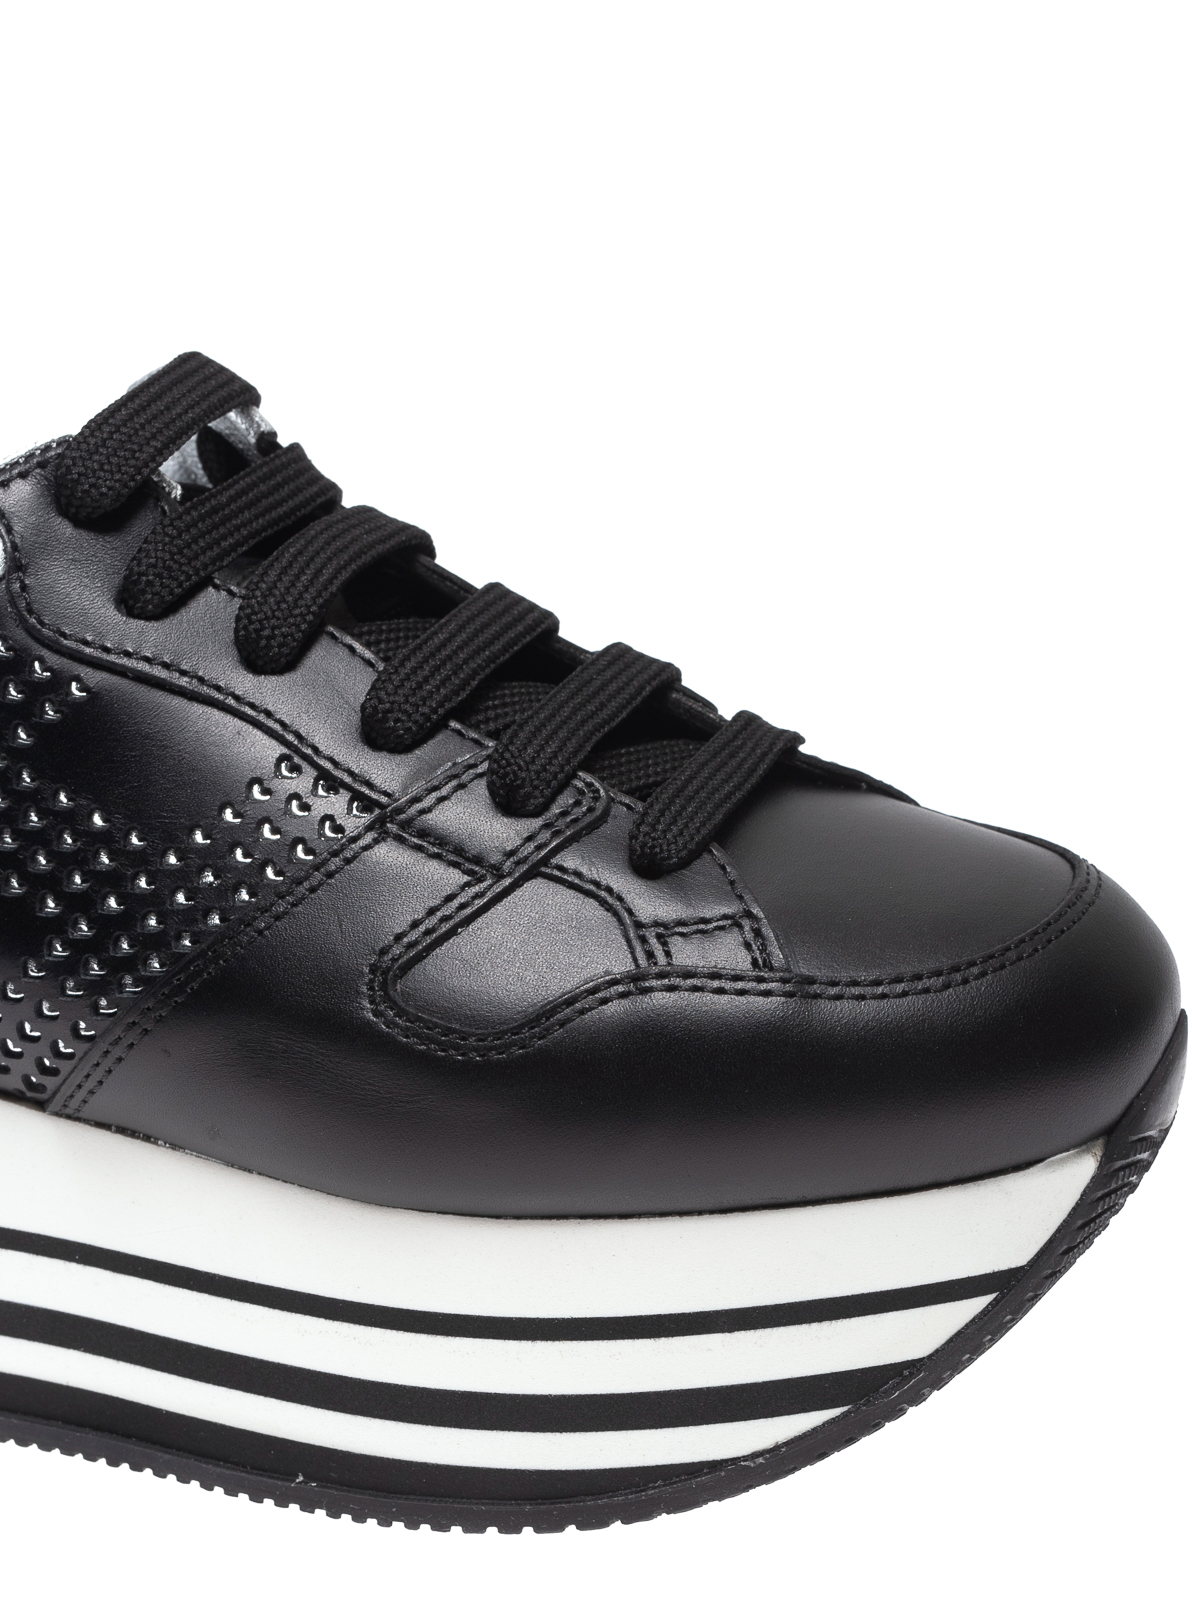 Trainers Hogan - Maxi H222 studded black leather sneakers ...